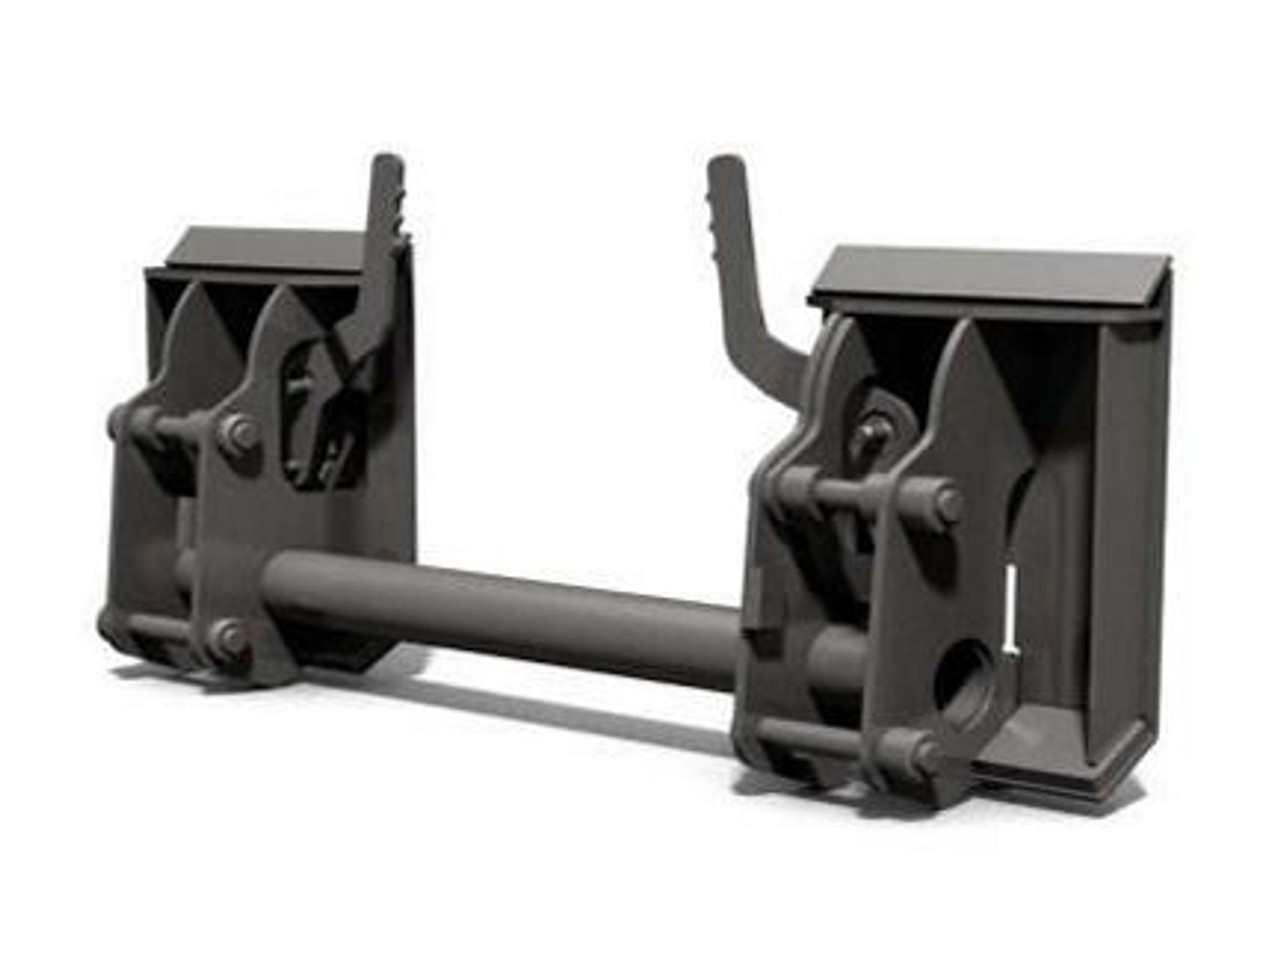 Skid Steer Universal To Pin-On Mount Adapter (Heavy Duty)